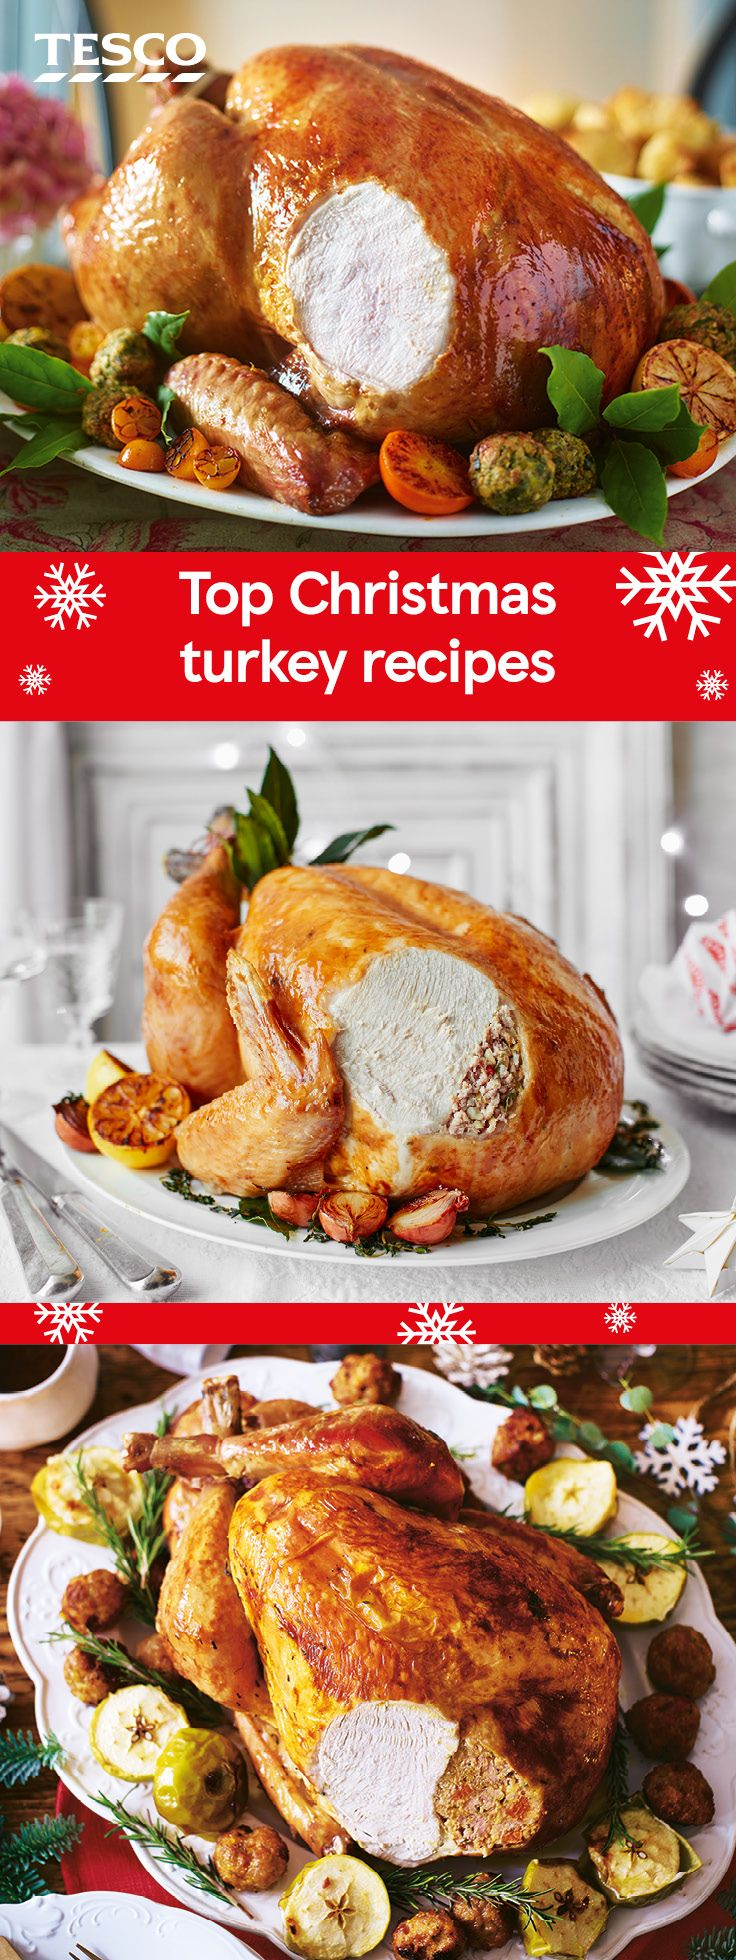 Make sure to keep your roast turkey moist and juicy with one of these festive stuffings. Whatever the size and joint of your bird, whether you prefer traditional ingredients or are keen to experiment with seasonal alternatives, these stuffing ideas are a sure-fire flavour hit for your Christmas Dinner. | Tesco